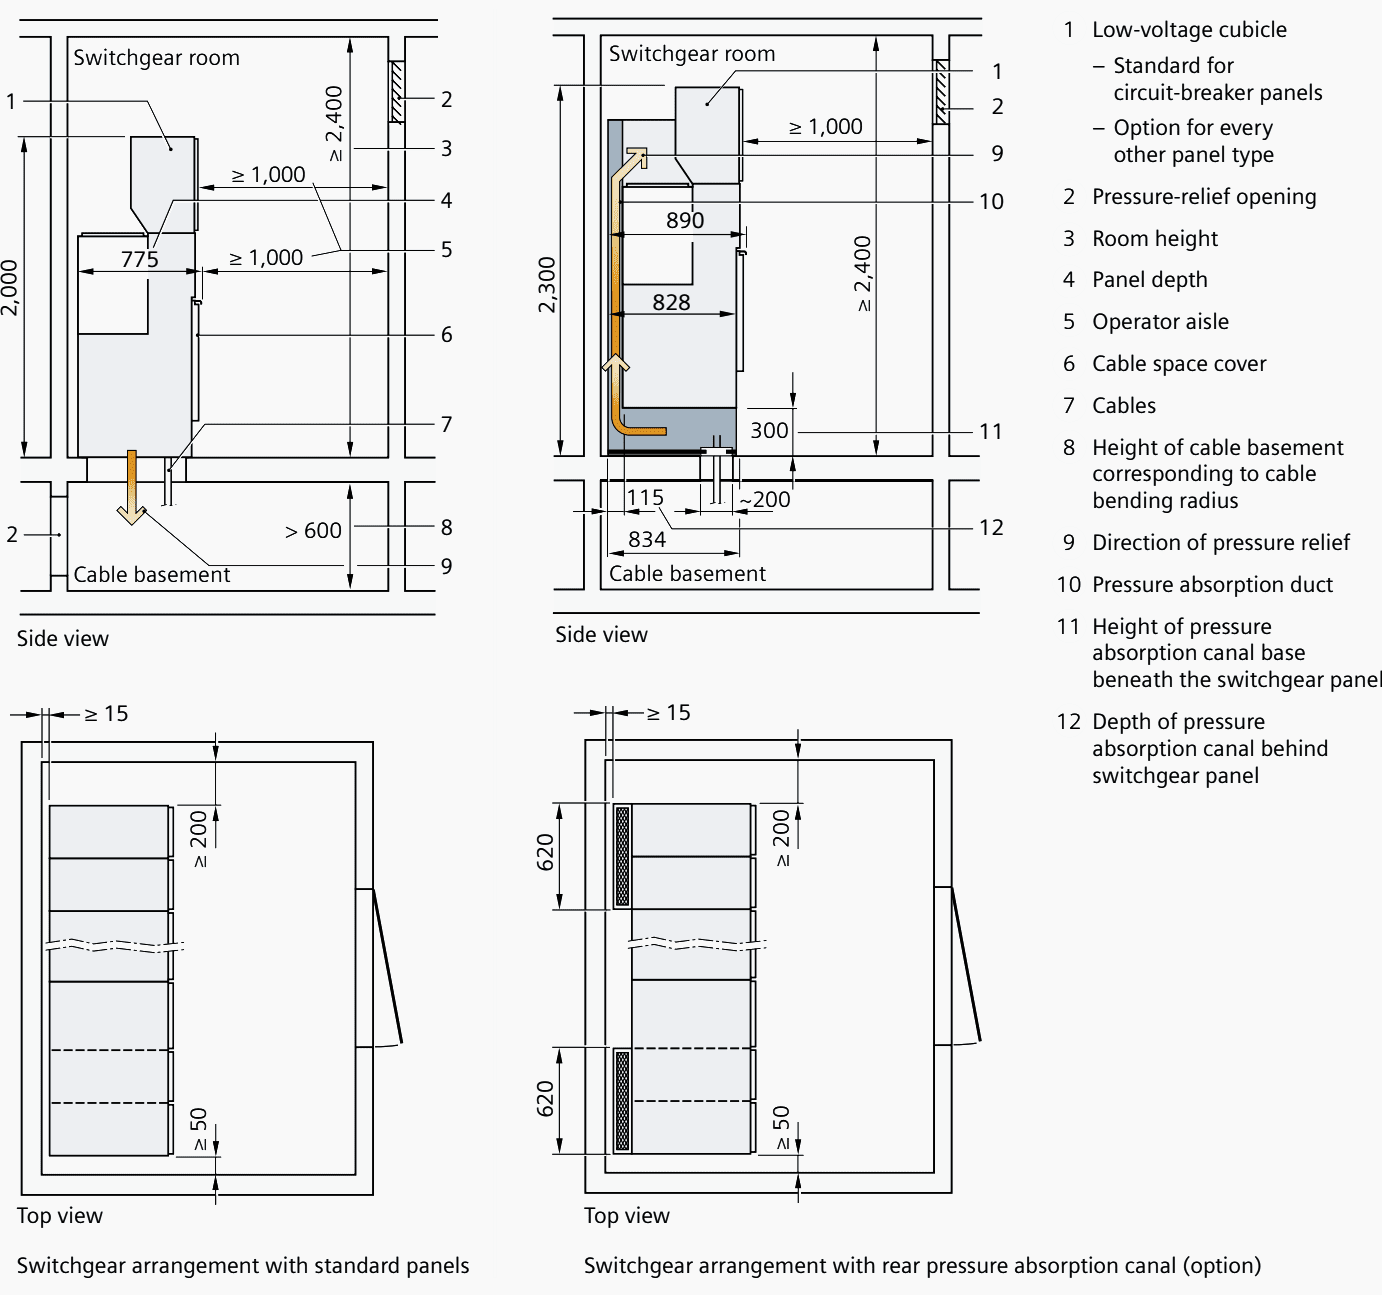 Room layout for switchgear with pressure relief downward (left) and with pressure absorption duct